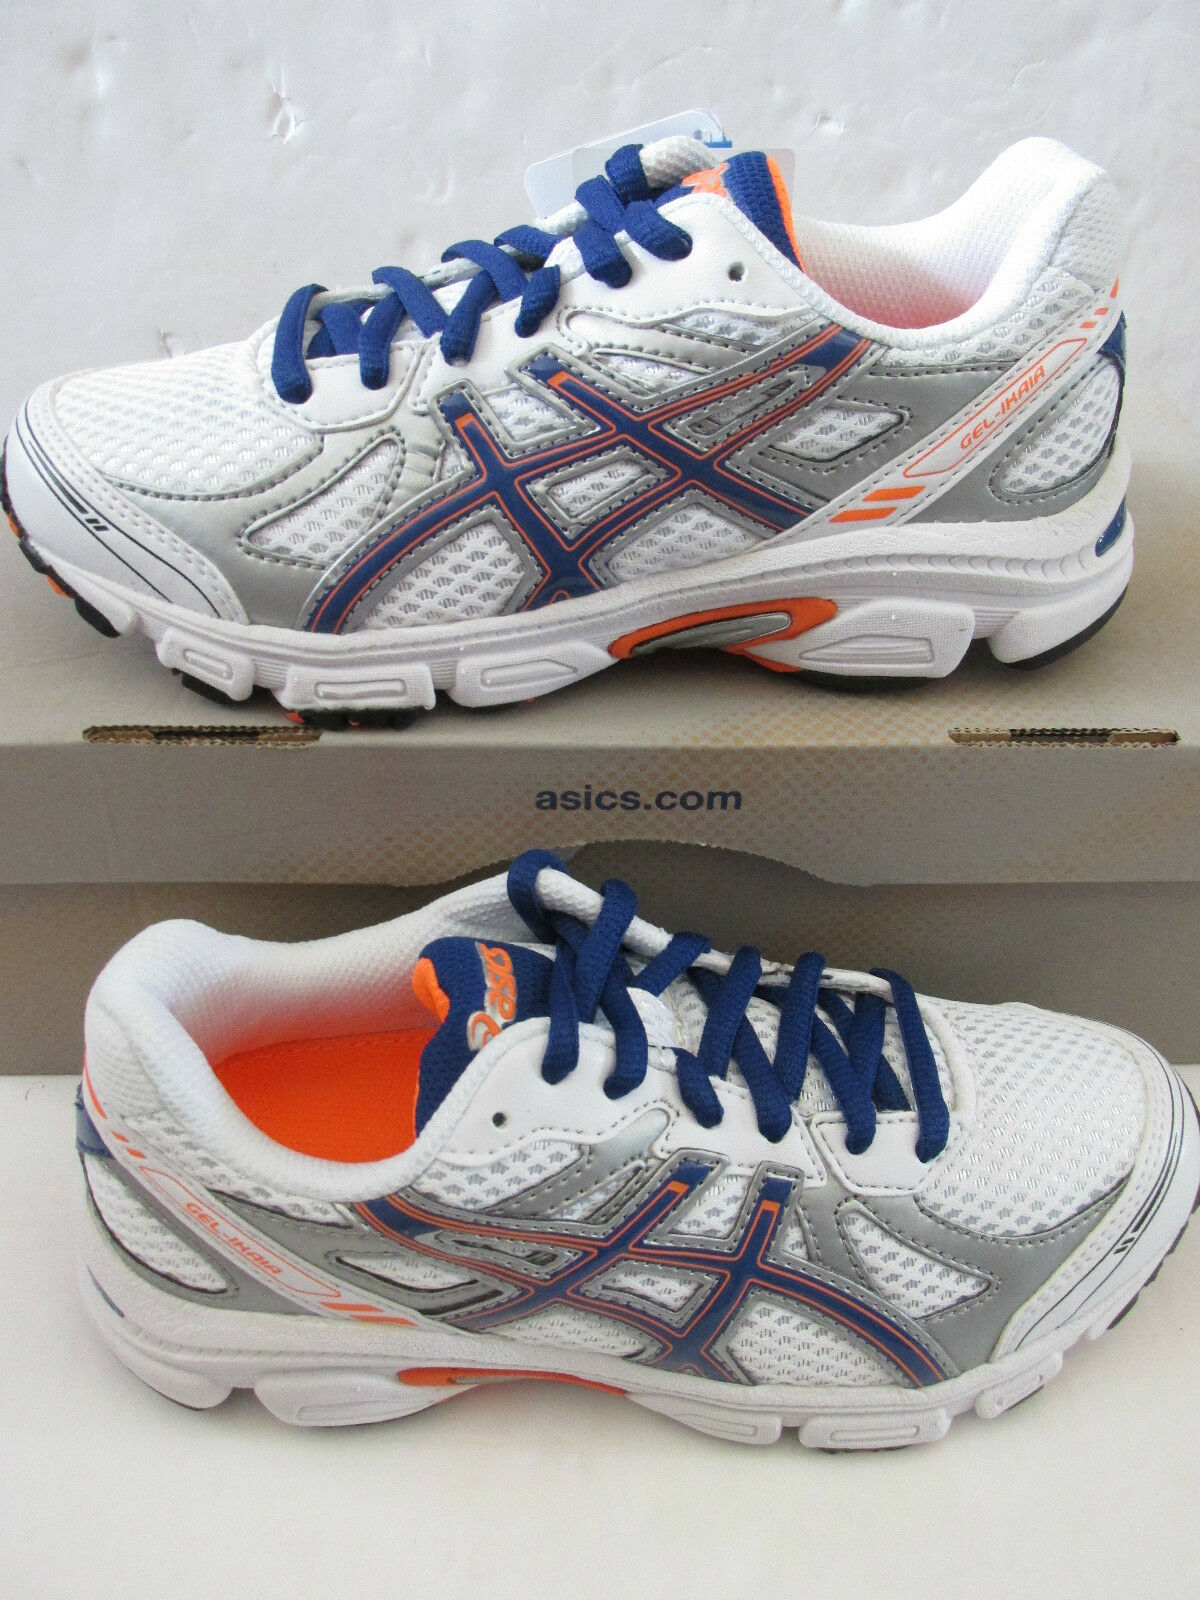 asics gel-IKAIA 4 GS running trainers C30QQ 0159 sneakers shoes